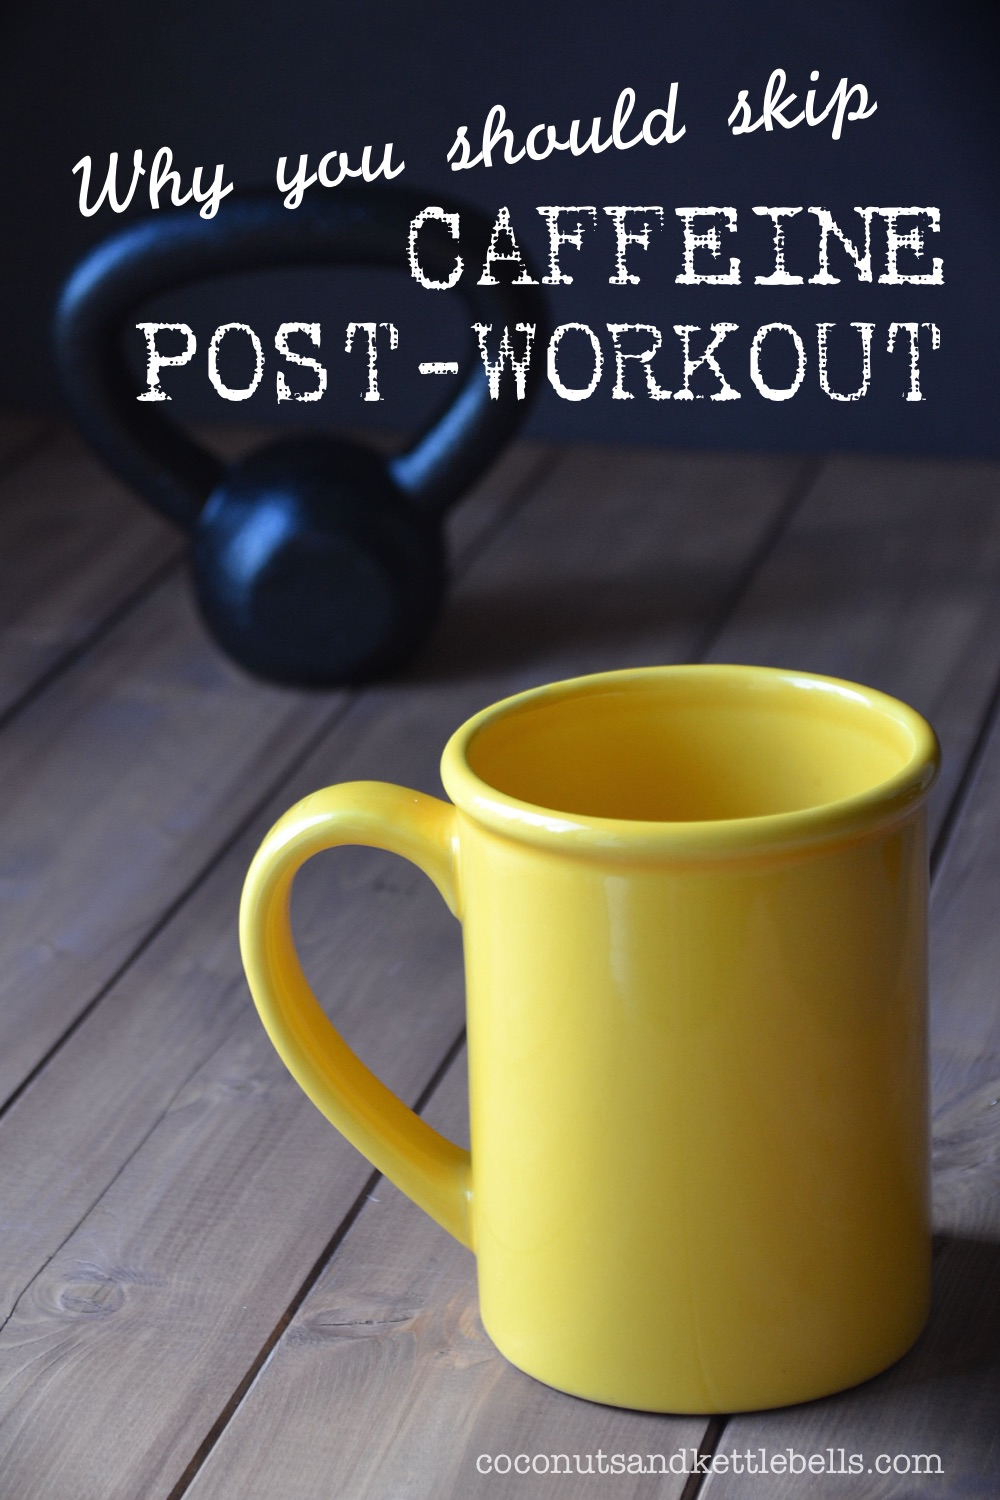 Why You Should Skip Caffeine Post Workout - Coconuts and Kettlebells